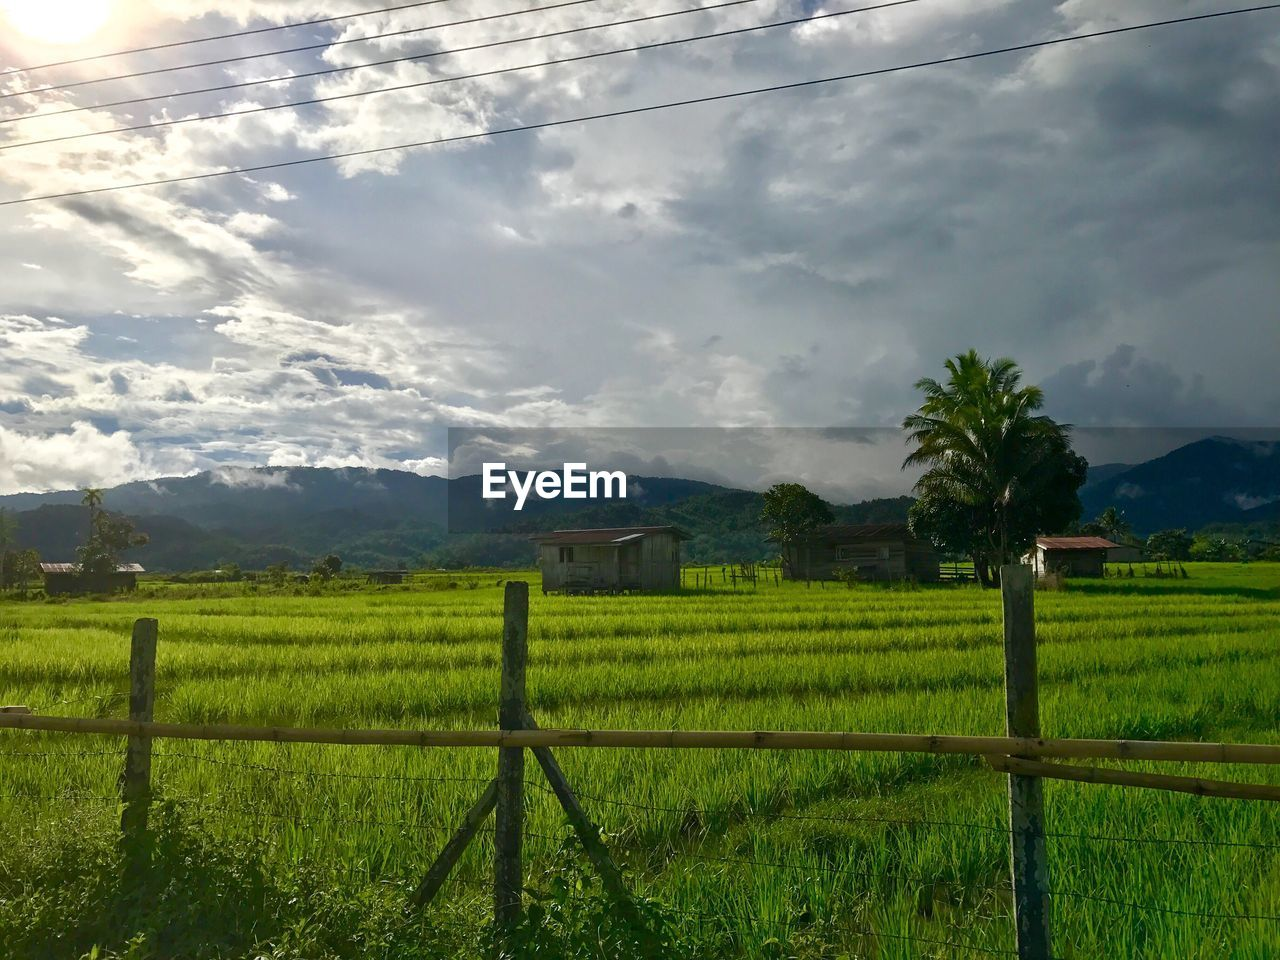 field, agriculture, landscape, no people, tranquility, nature, sky, growth, scenics, tranquil scene, mountain, grass, day, rural scene, beauty in nature, outdoors, tree